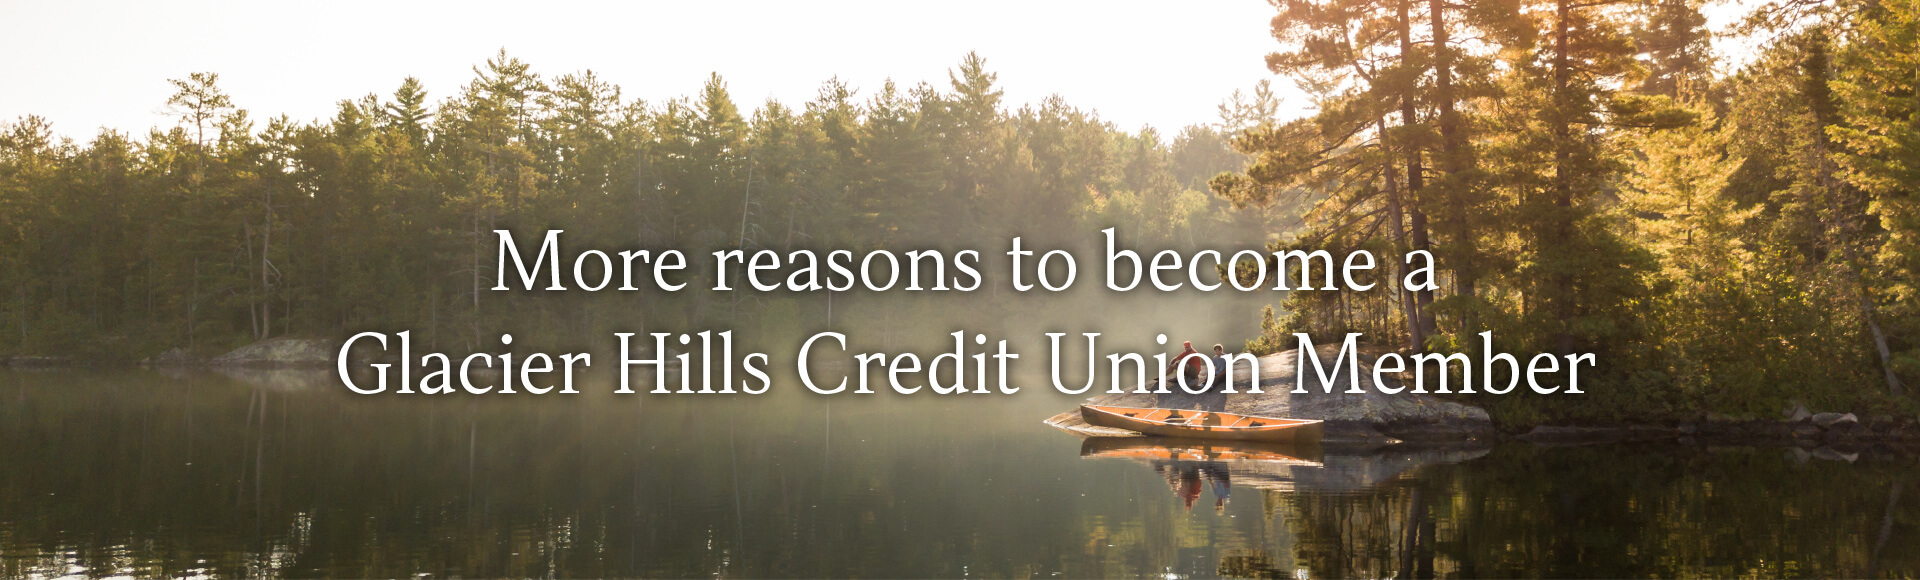 More reasons to become a Glacier Hills Credit Union Member